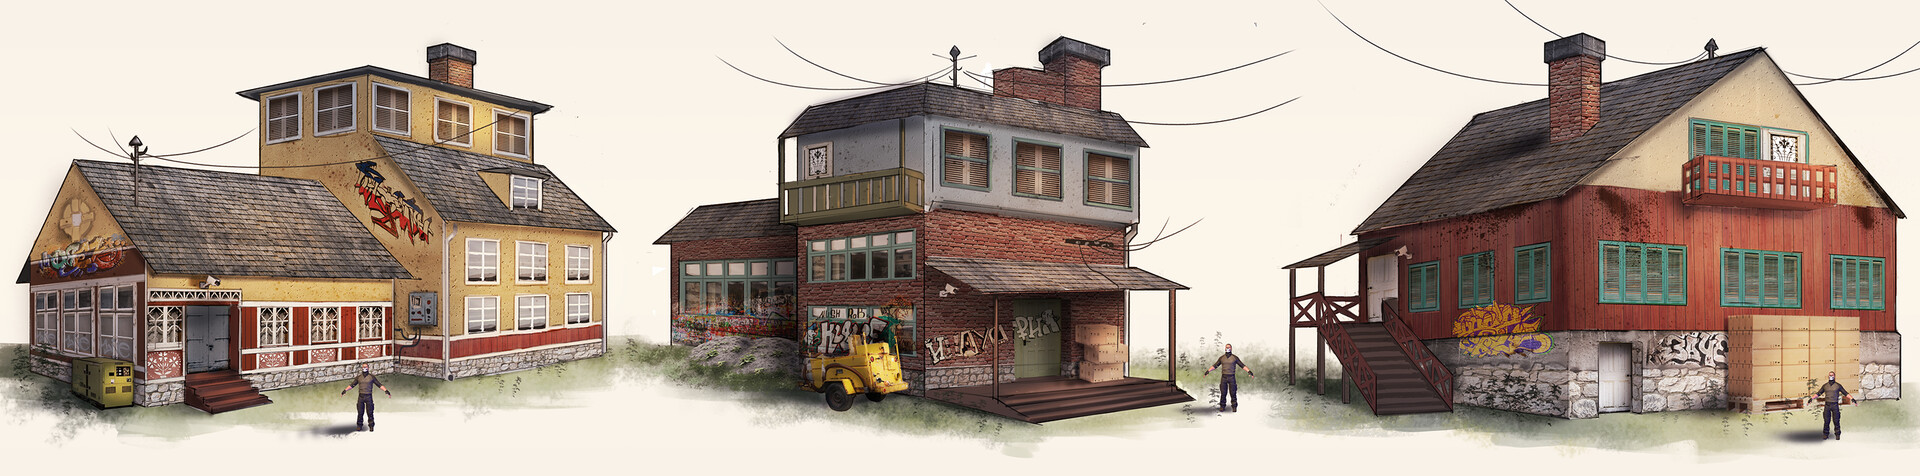 Emelie johansson small village level concept residental house updated